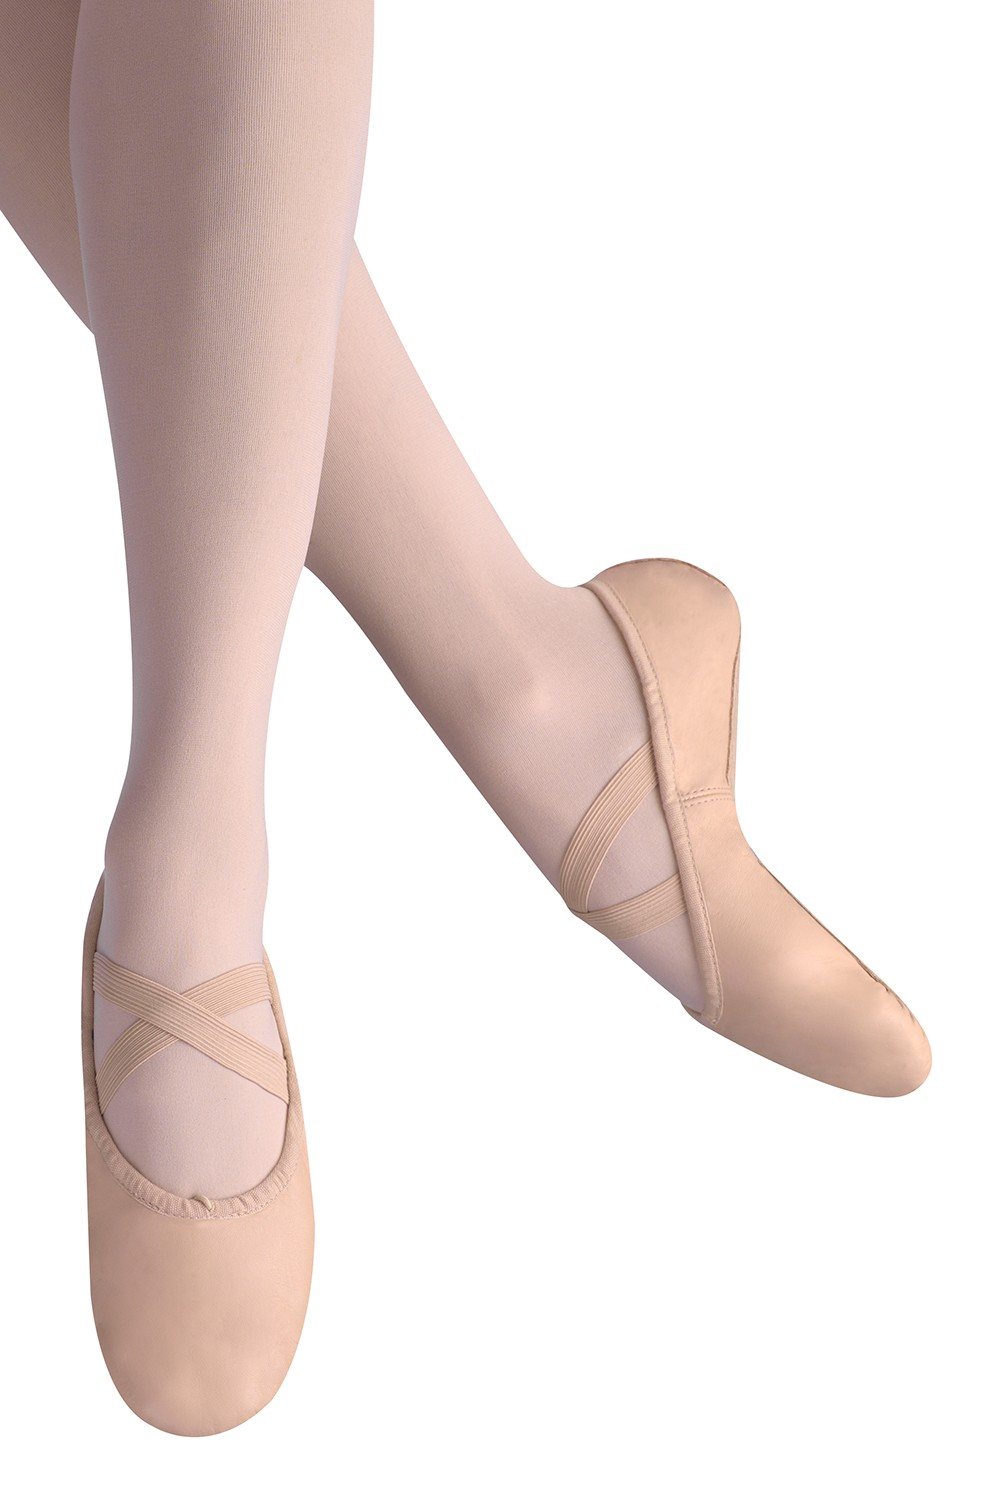 Ensemble Women's Ballet Shoes